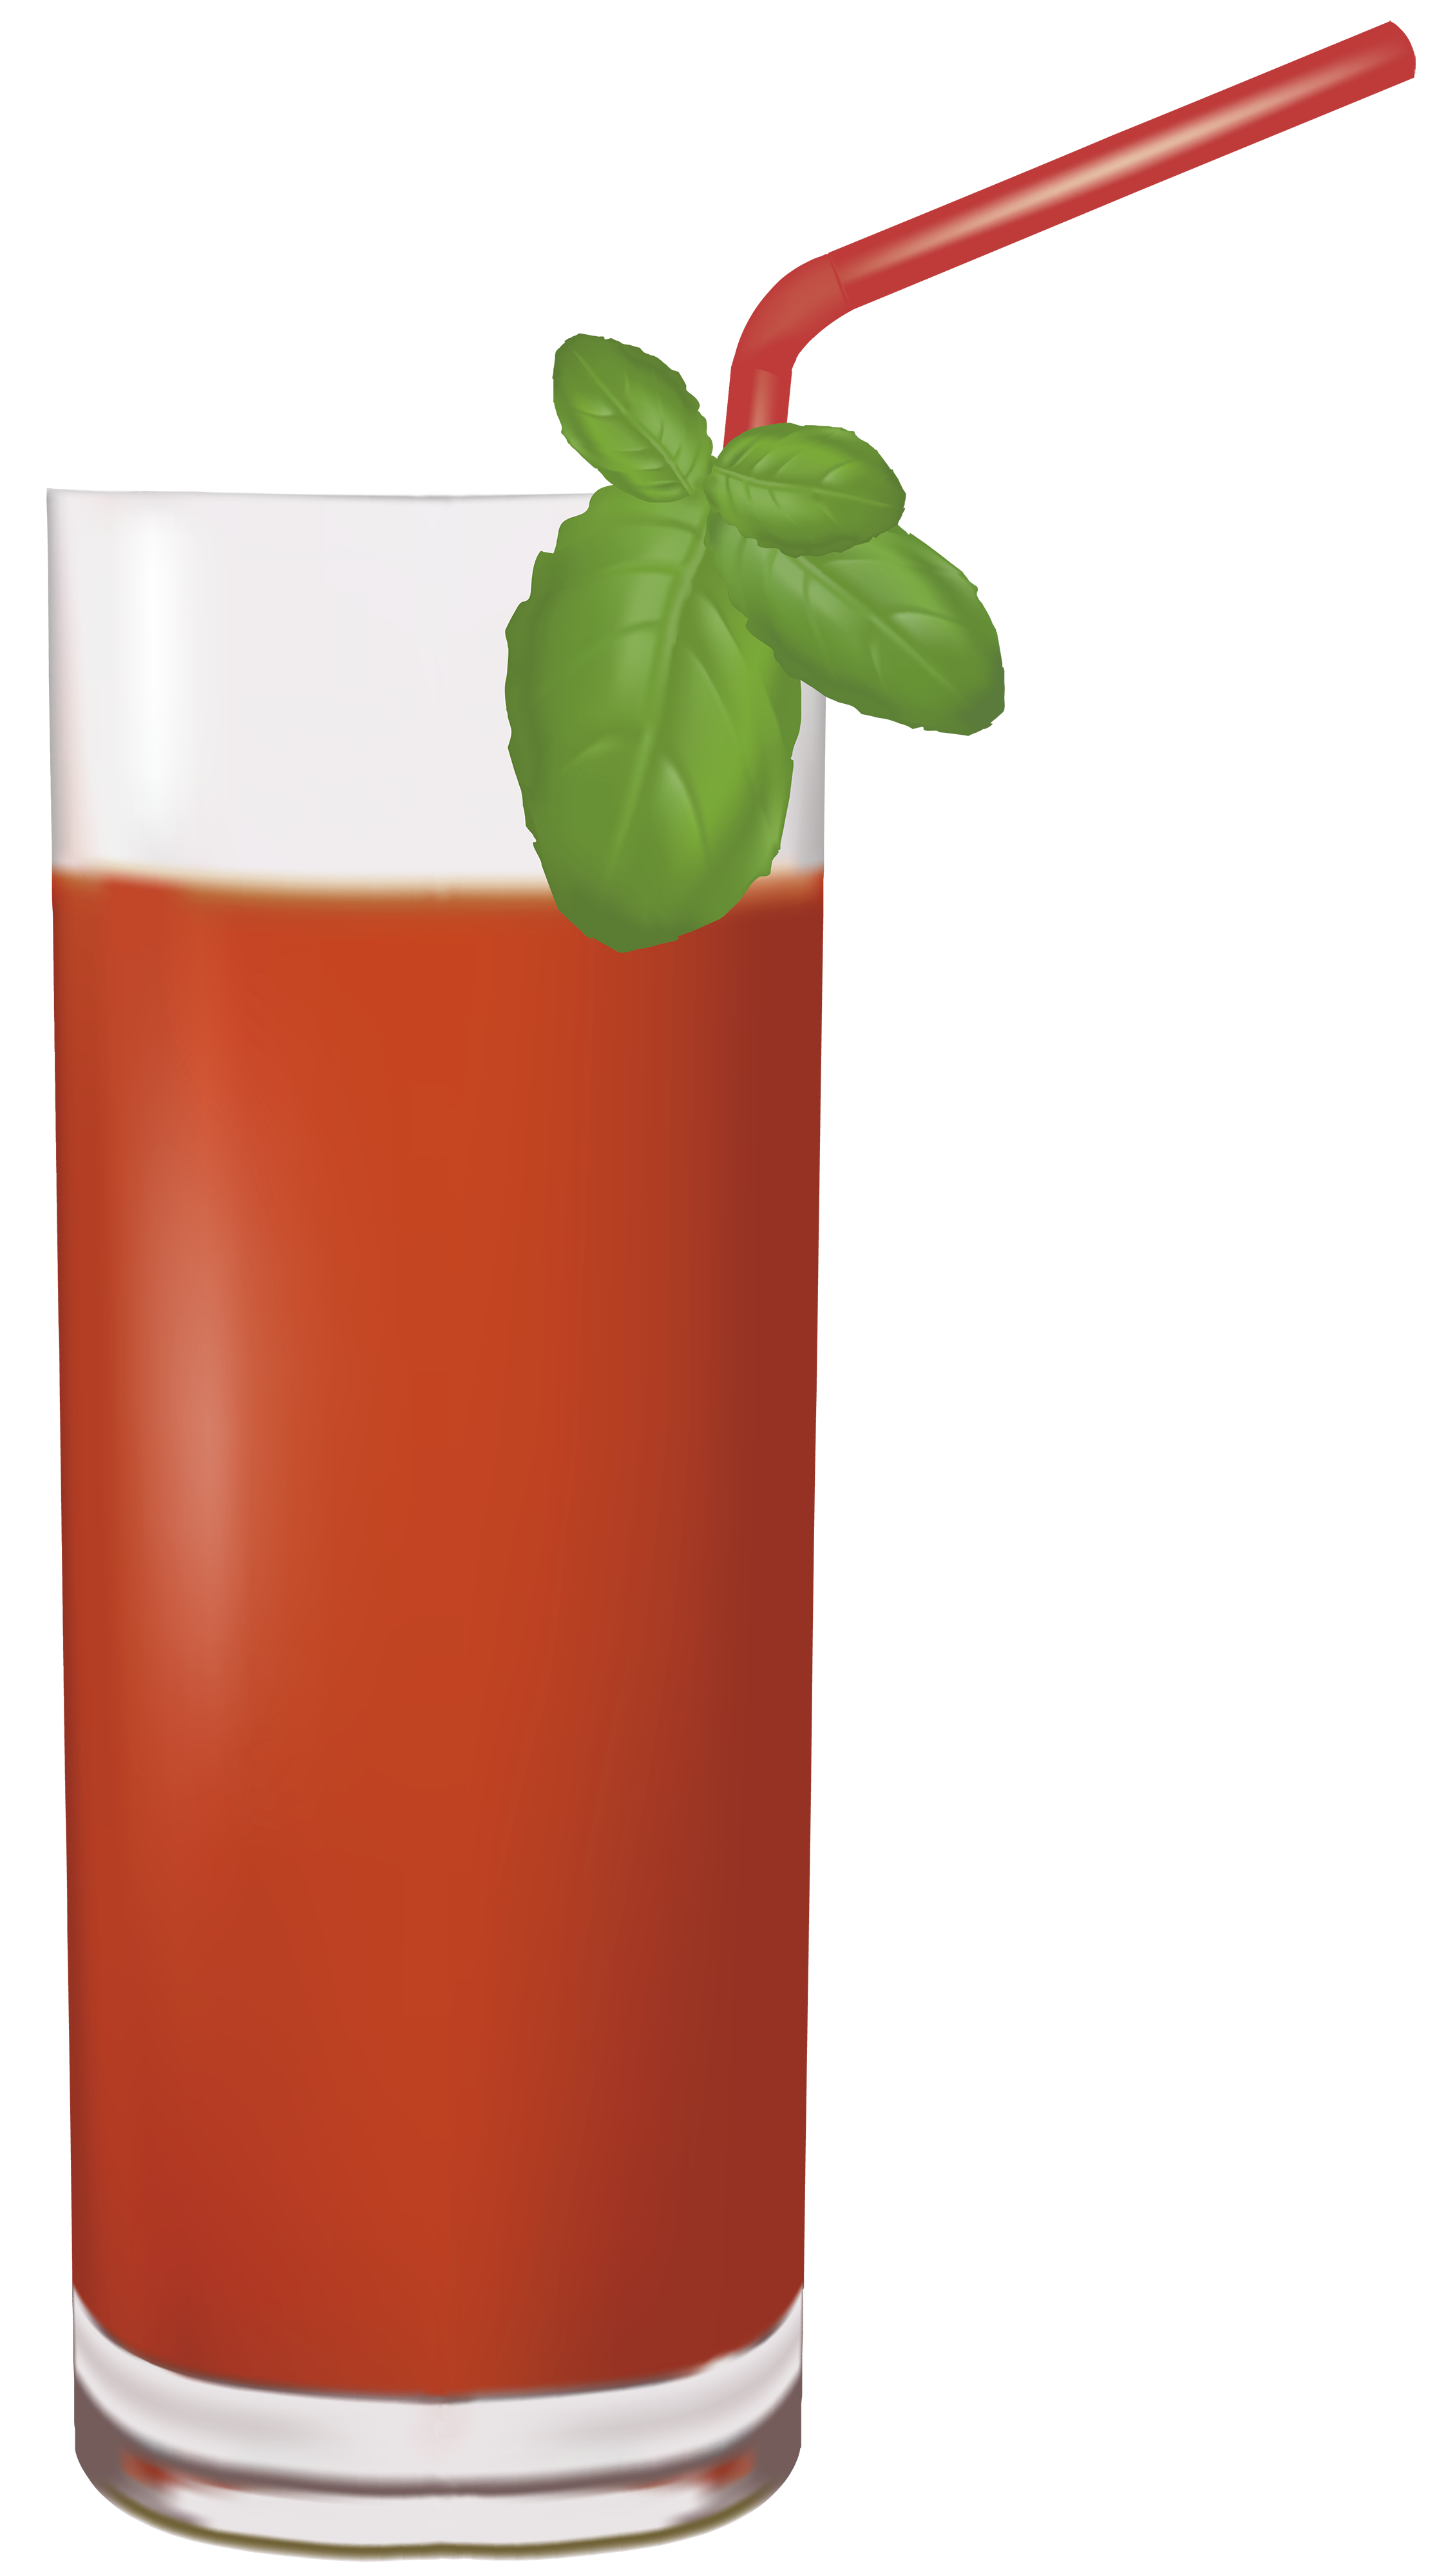 Drinks clipart sports drink. Bloody mary cocktail png